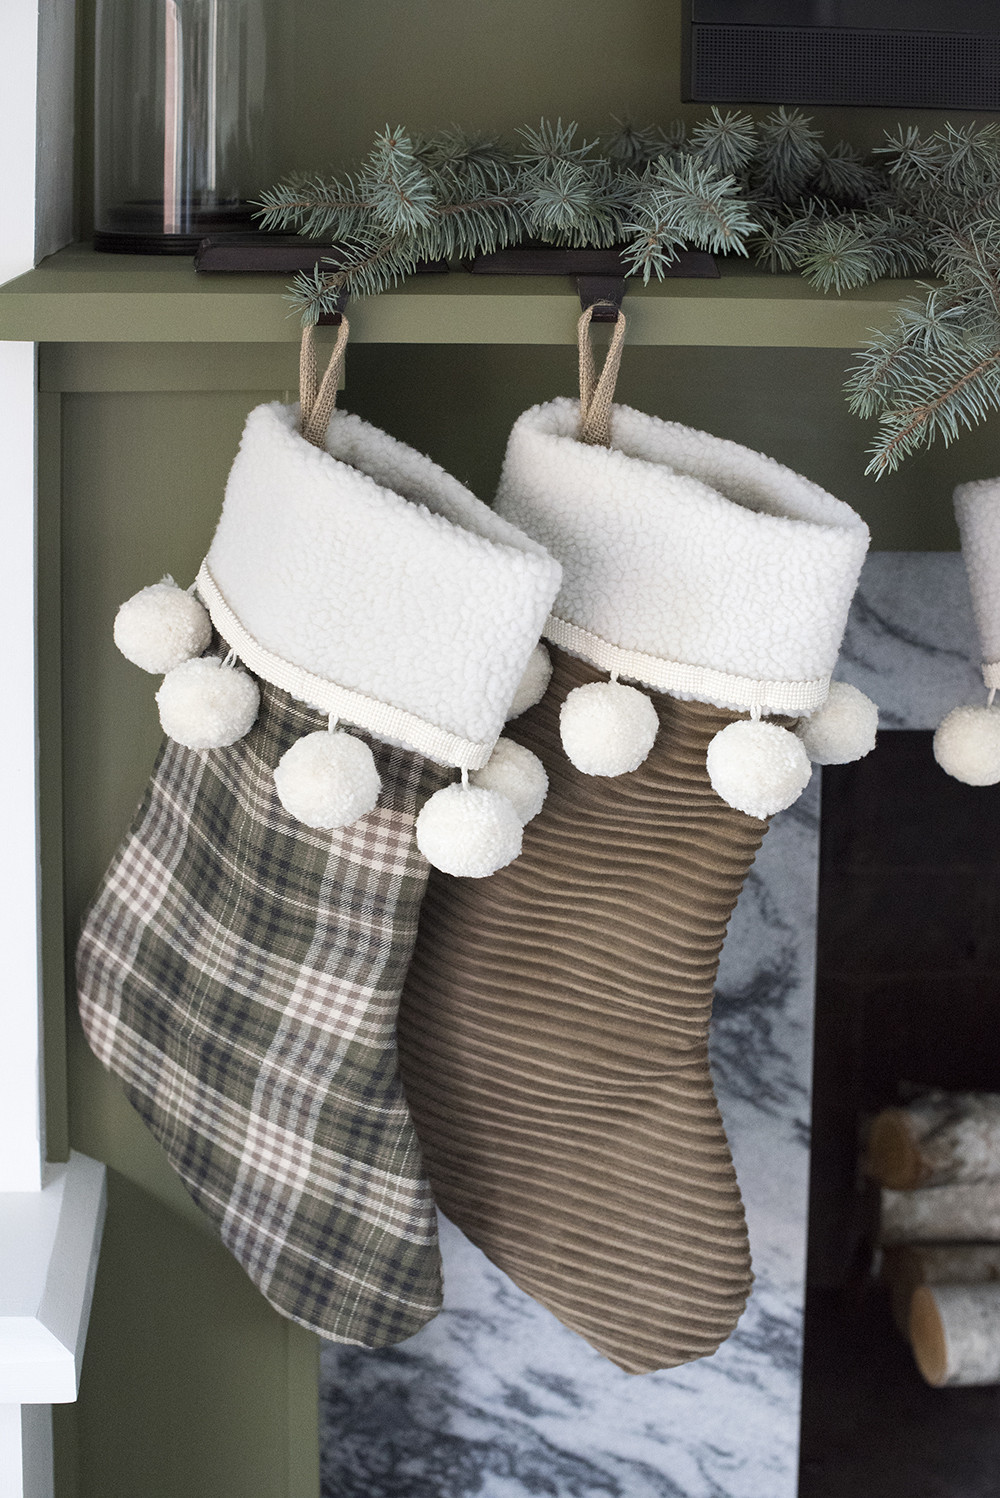 Best ideas about DIY Christmas Stocking . Save or Pin Christmas Stocking DIY for the Holidays Room for Tuesday Now.